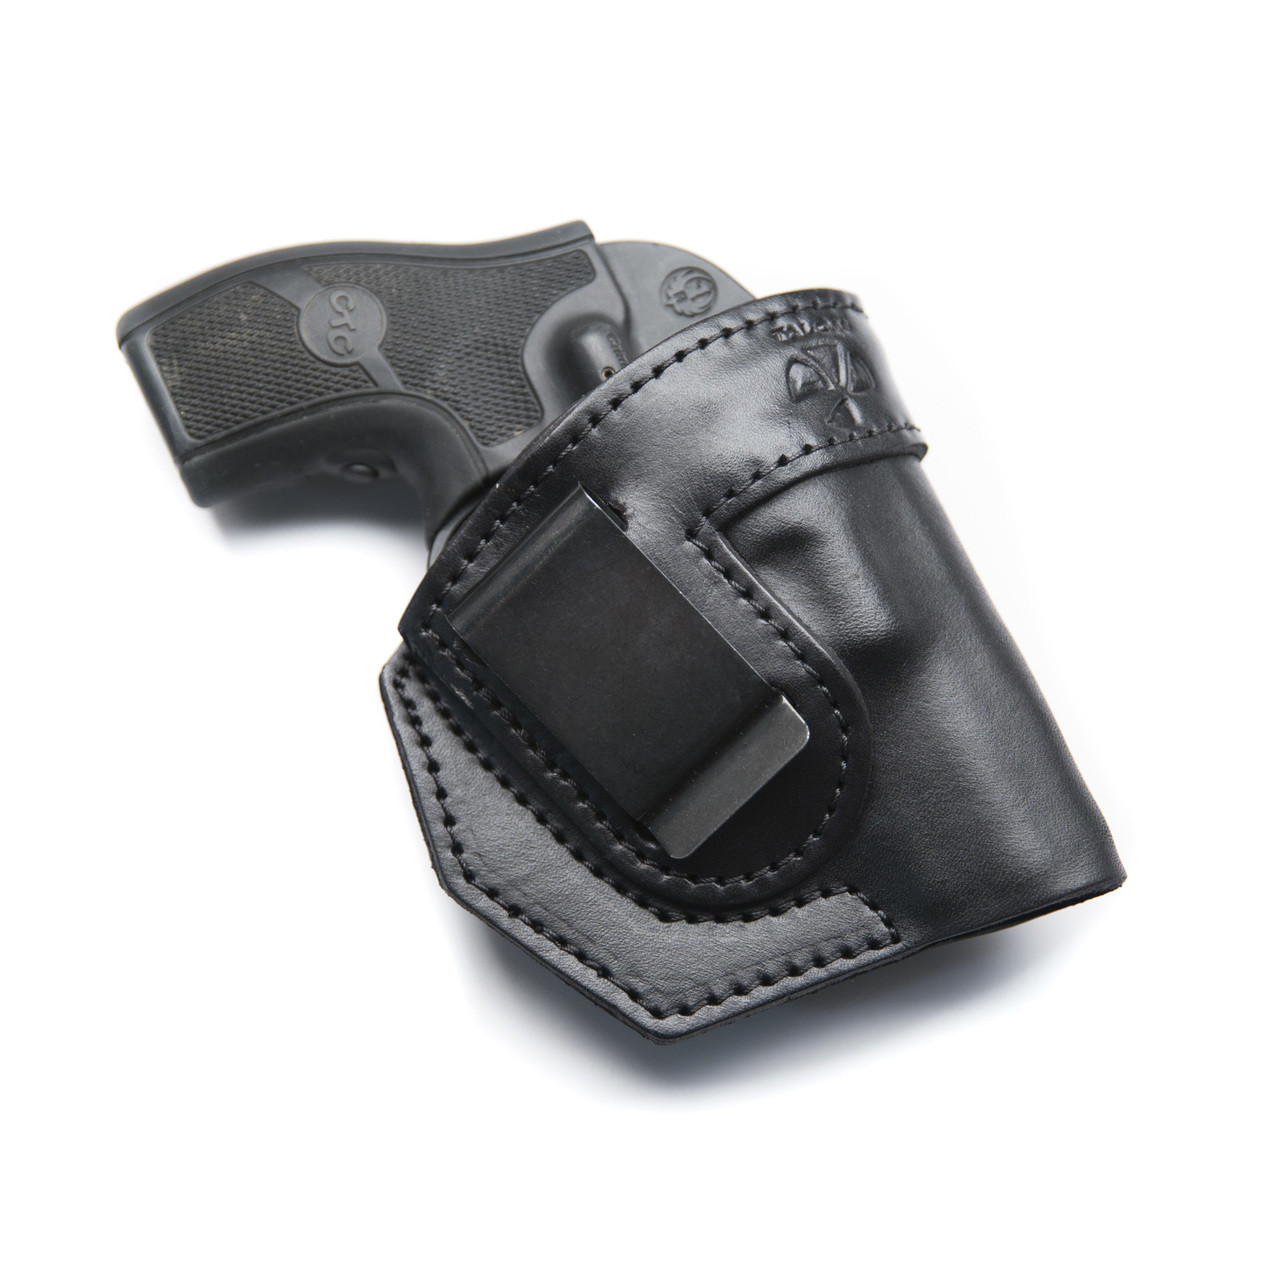 Talon Ruger LCR-S&W Defender Revolver IWB Holster With Clip